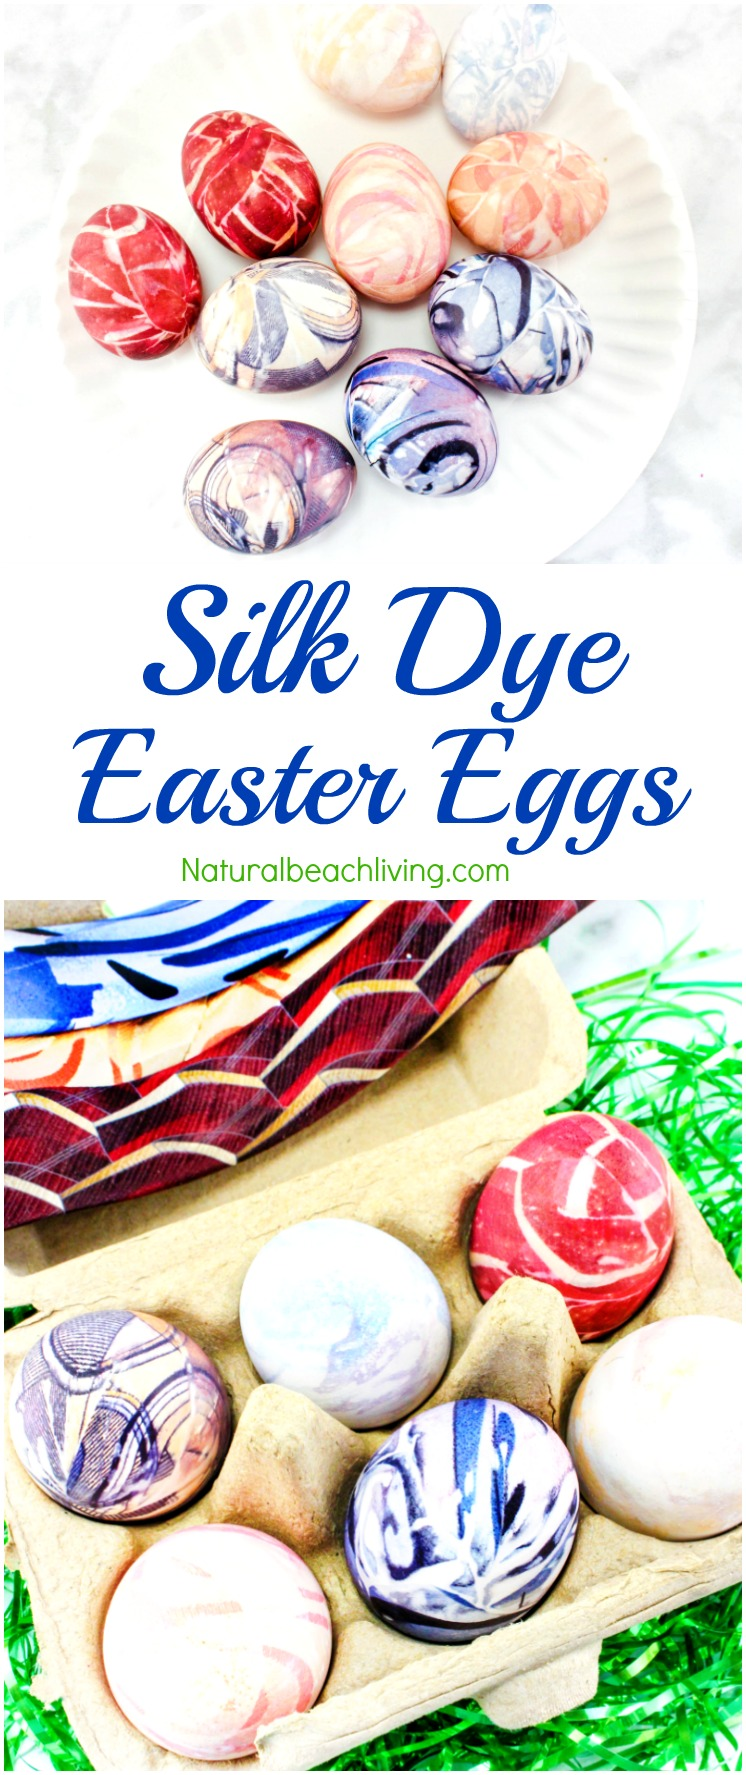 How to Silk Dye Easter Eggs Perfectly, Tie Dye Easter Eggs and creative ways to dye eggs, Easter Crafts for kids, One of a kind Beautiful Silk Dyed Eggs.